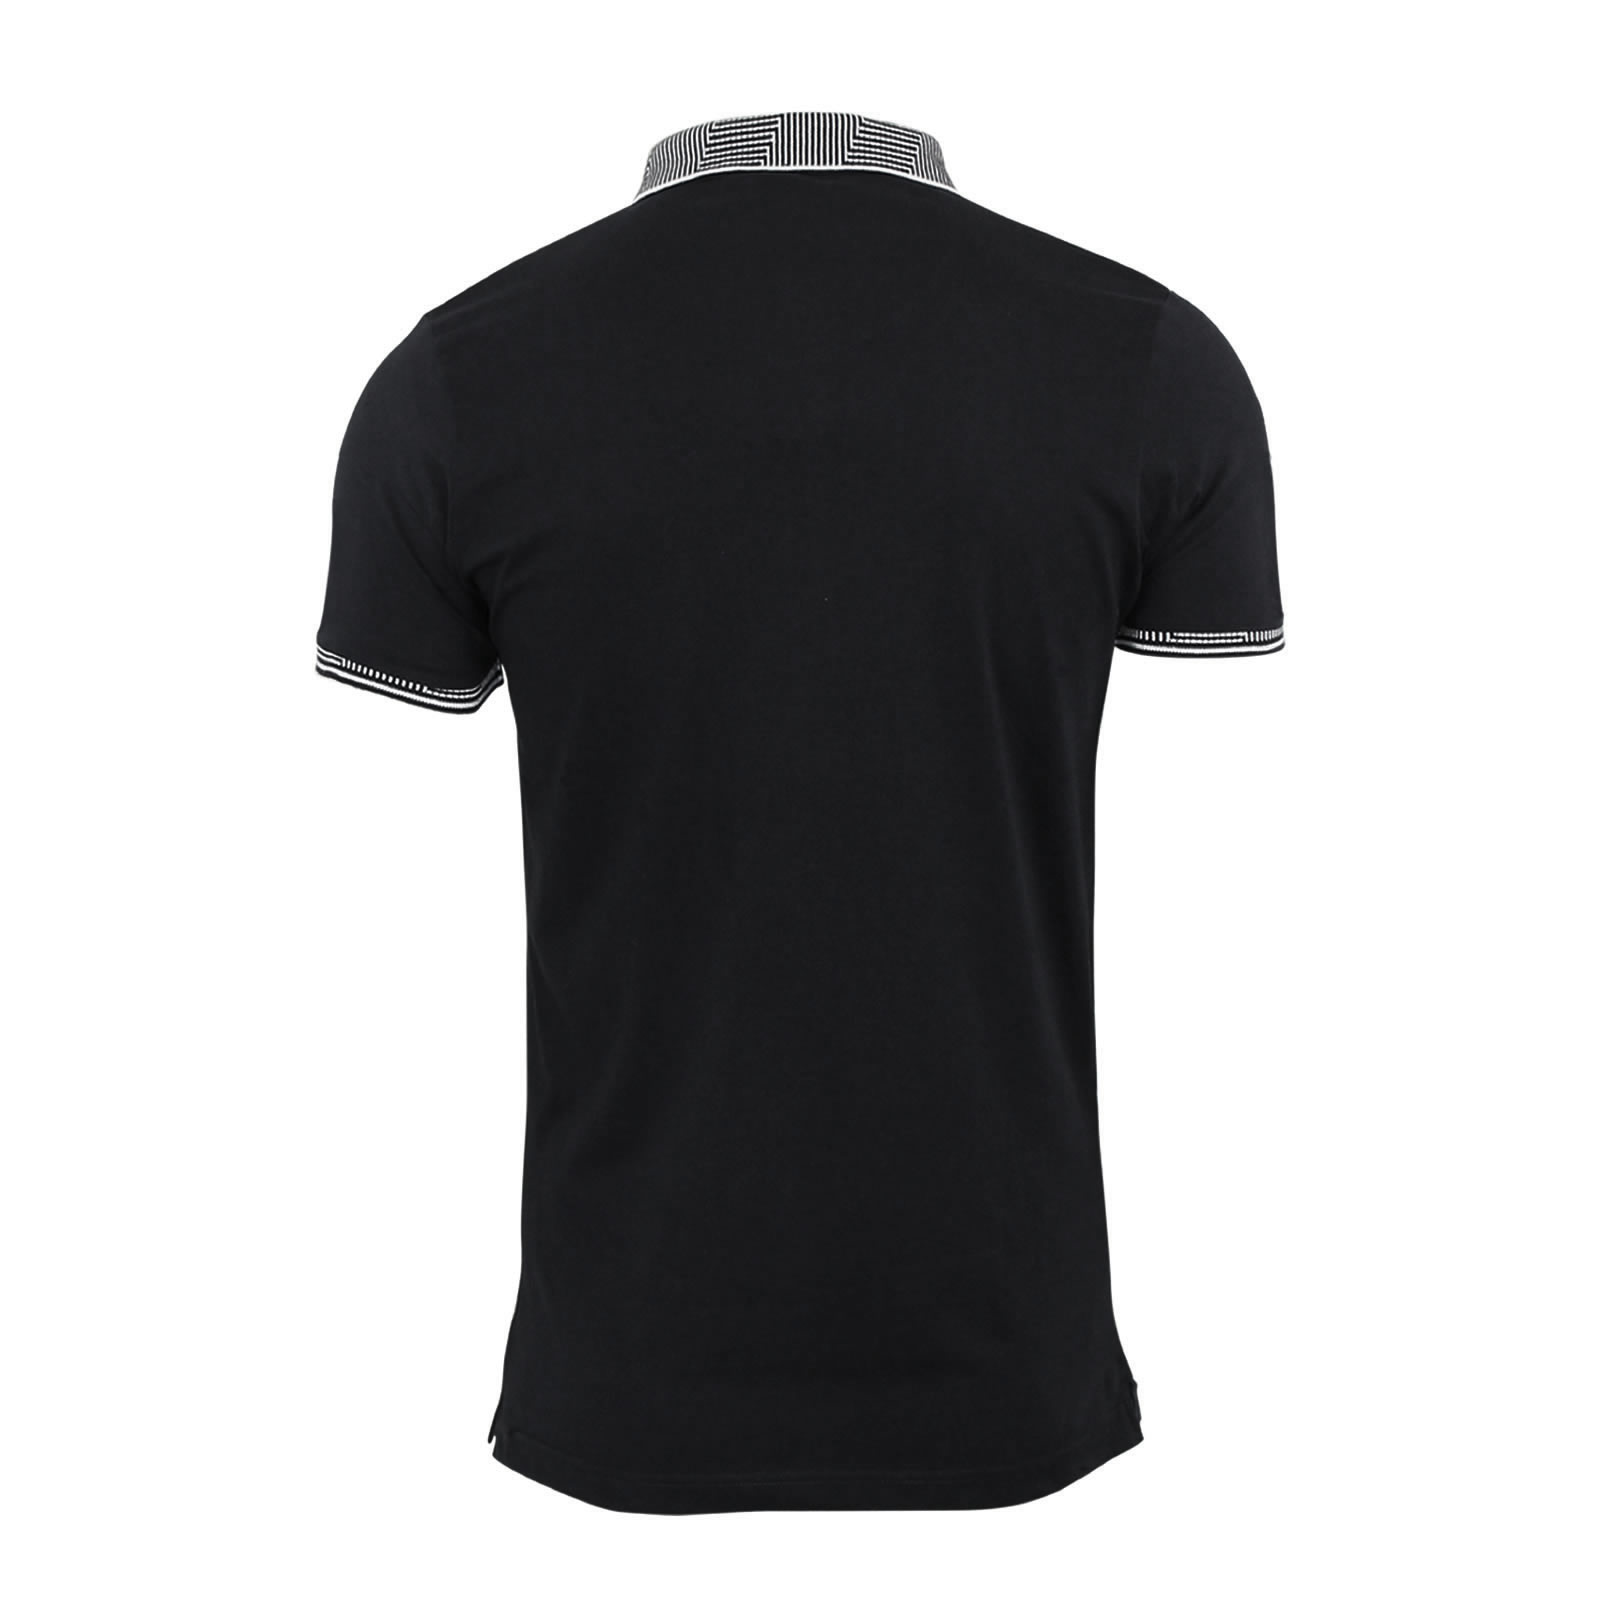 Mens-Polo-T-Shirt-Brave-Soul-Glover-Cotton-Collared-Short-Sleeve-Casual-Top thumbnail 13